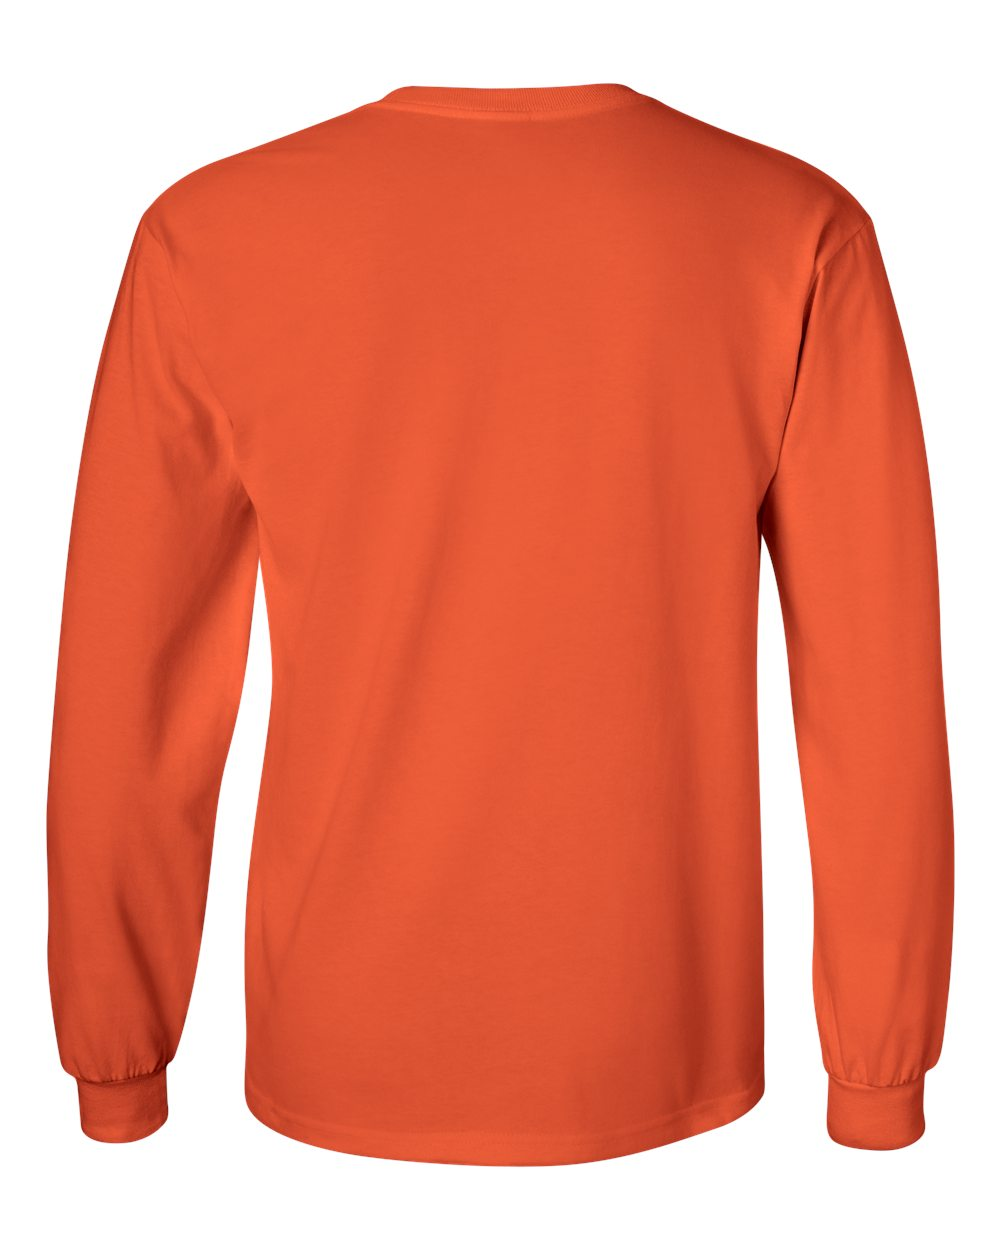 Gildan-Men-039-s-Ultra-Cotton-6-oz-Long-Sleeve-T-Shirt-G240-S-5XL thumbnail 72